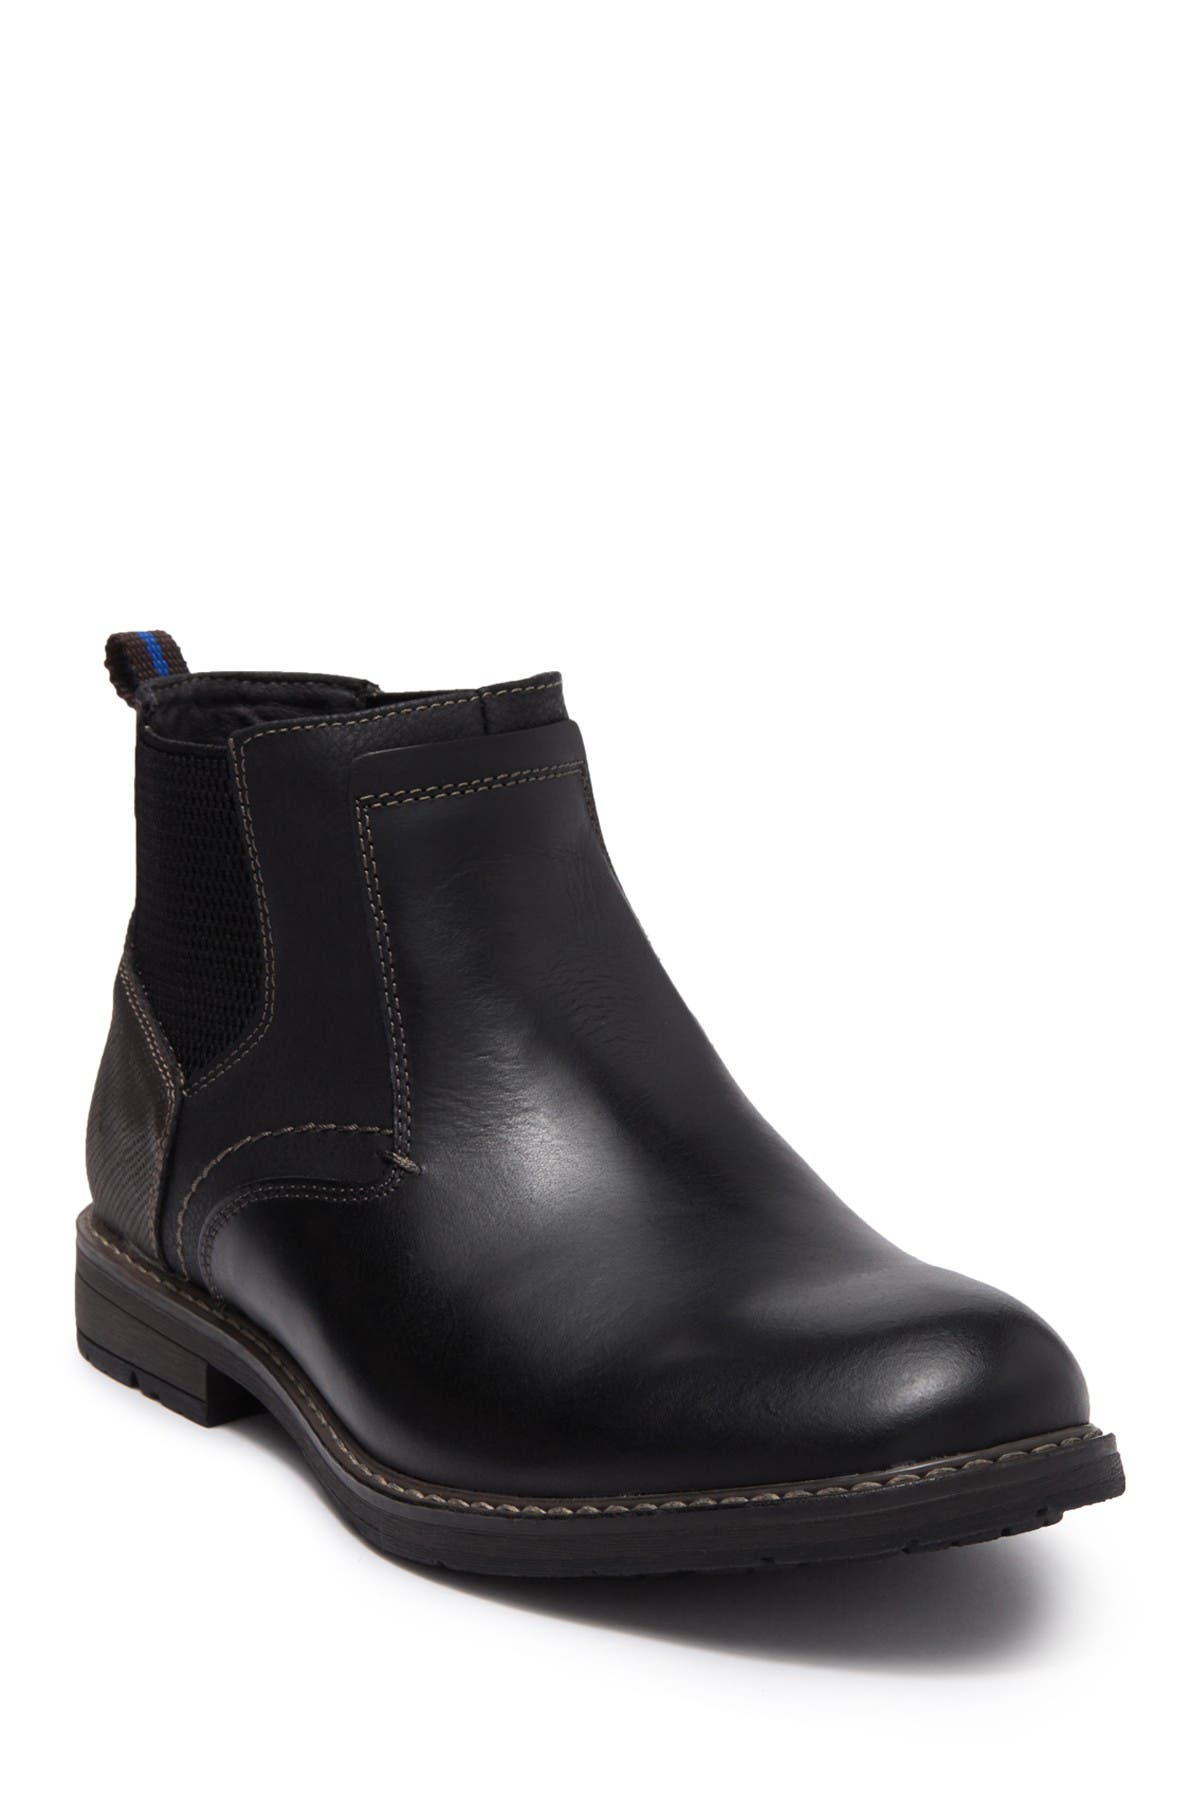 Image of NUNN BUSH Fuse Leather Plain Toe Chelsea Boot - Wide Width Available